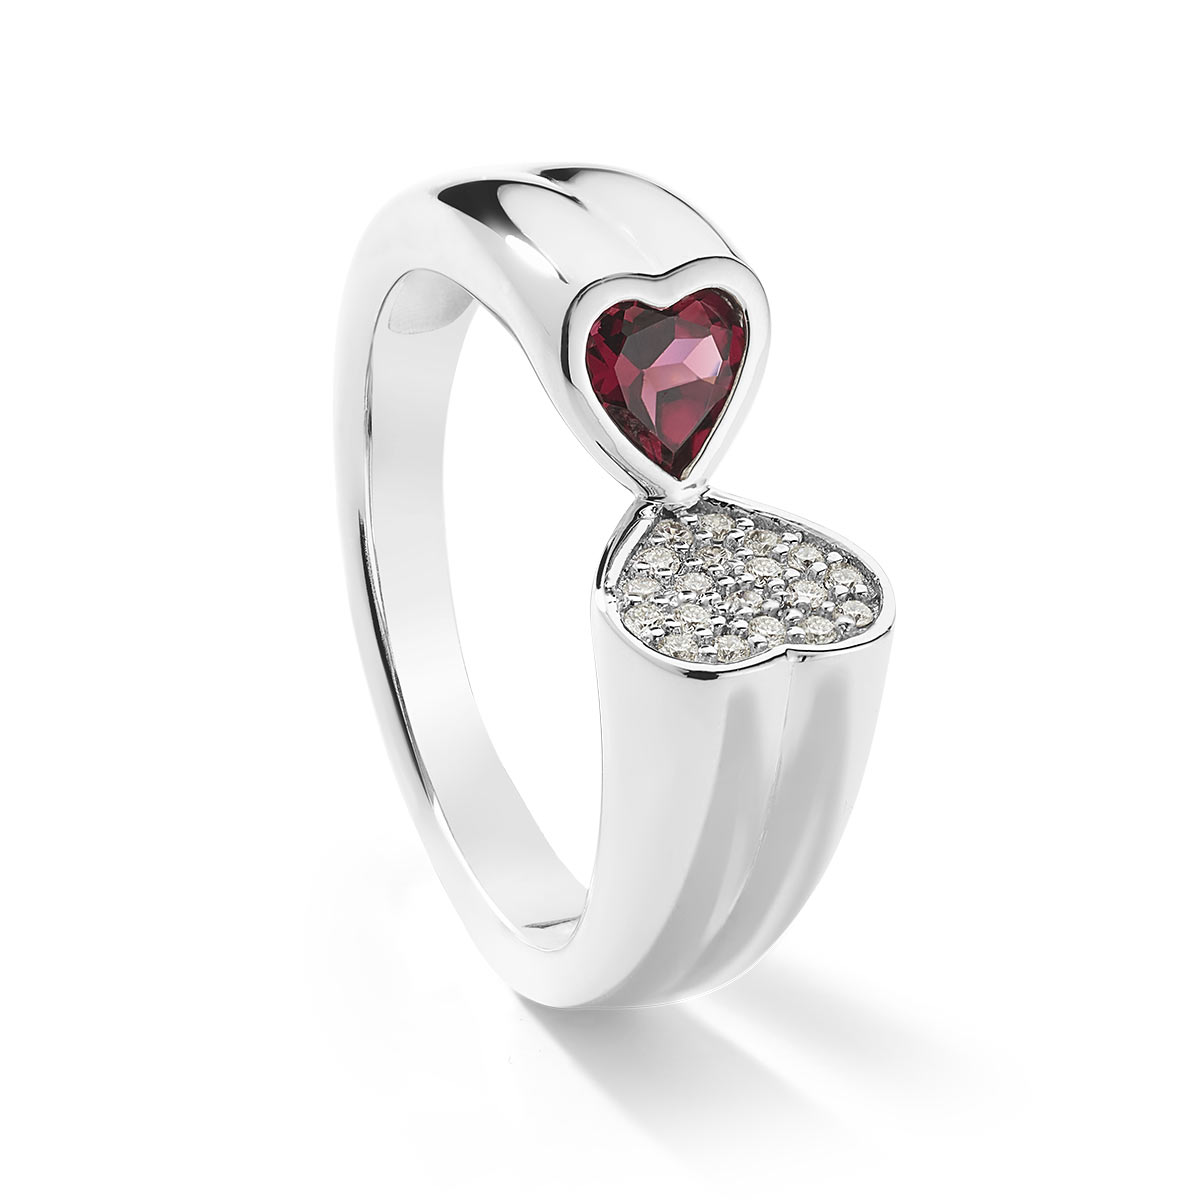 Bague or blanc 750 grenat rhodolite diamants - vue 1